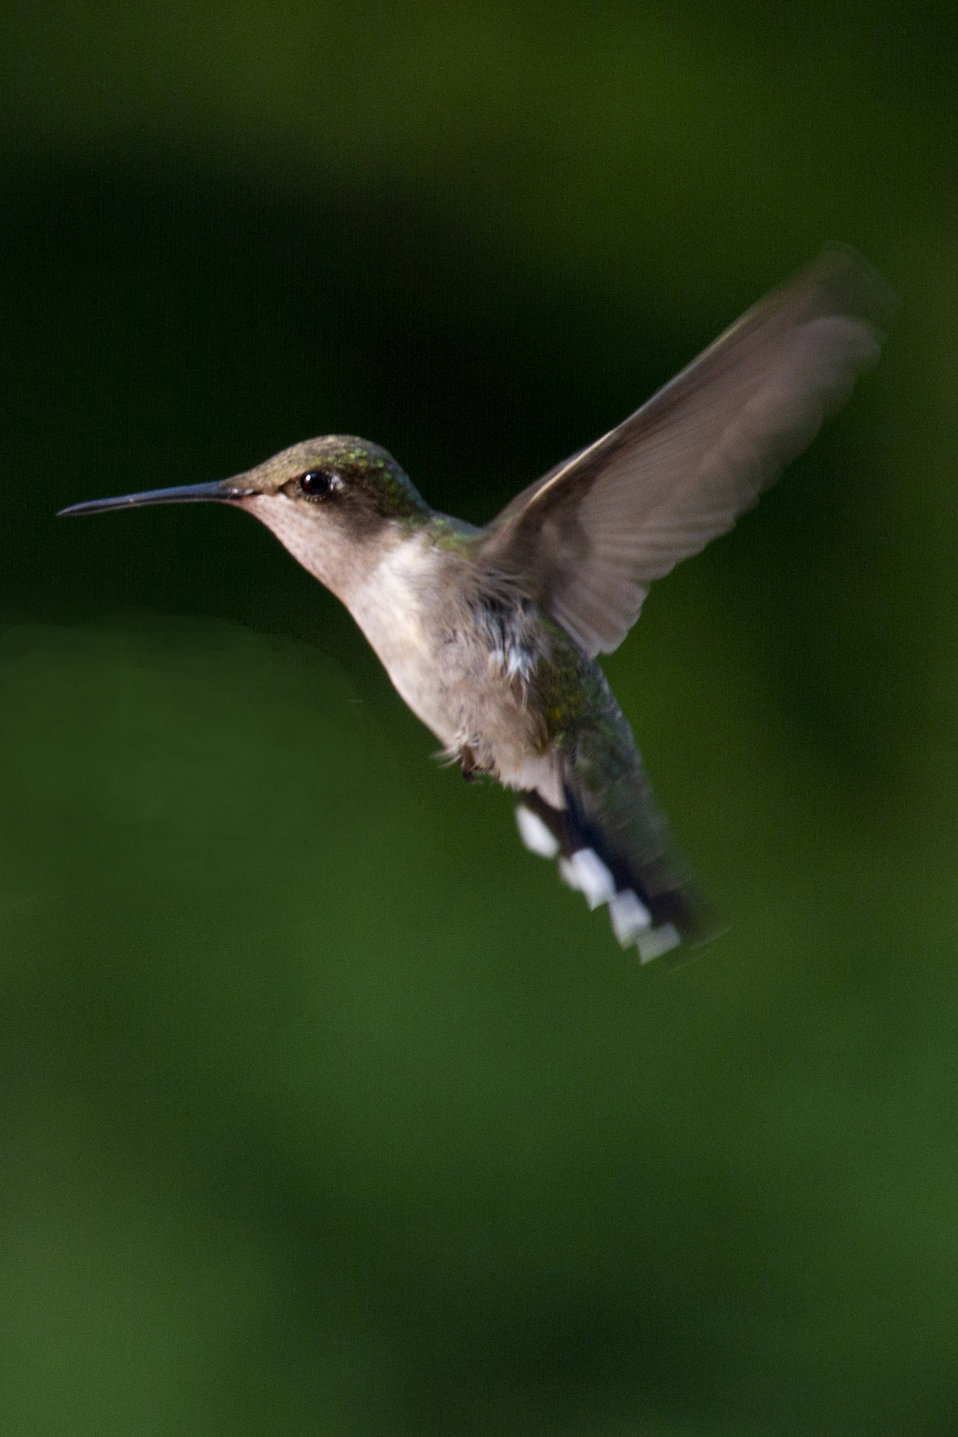 Hummingbird close-up : Free Stock Photo